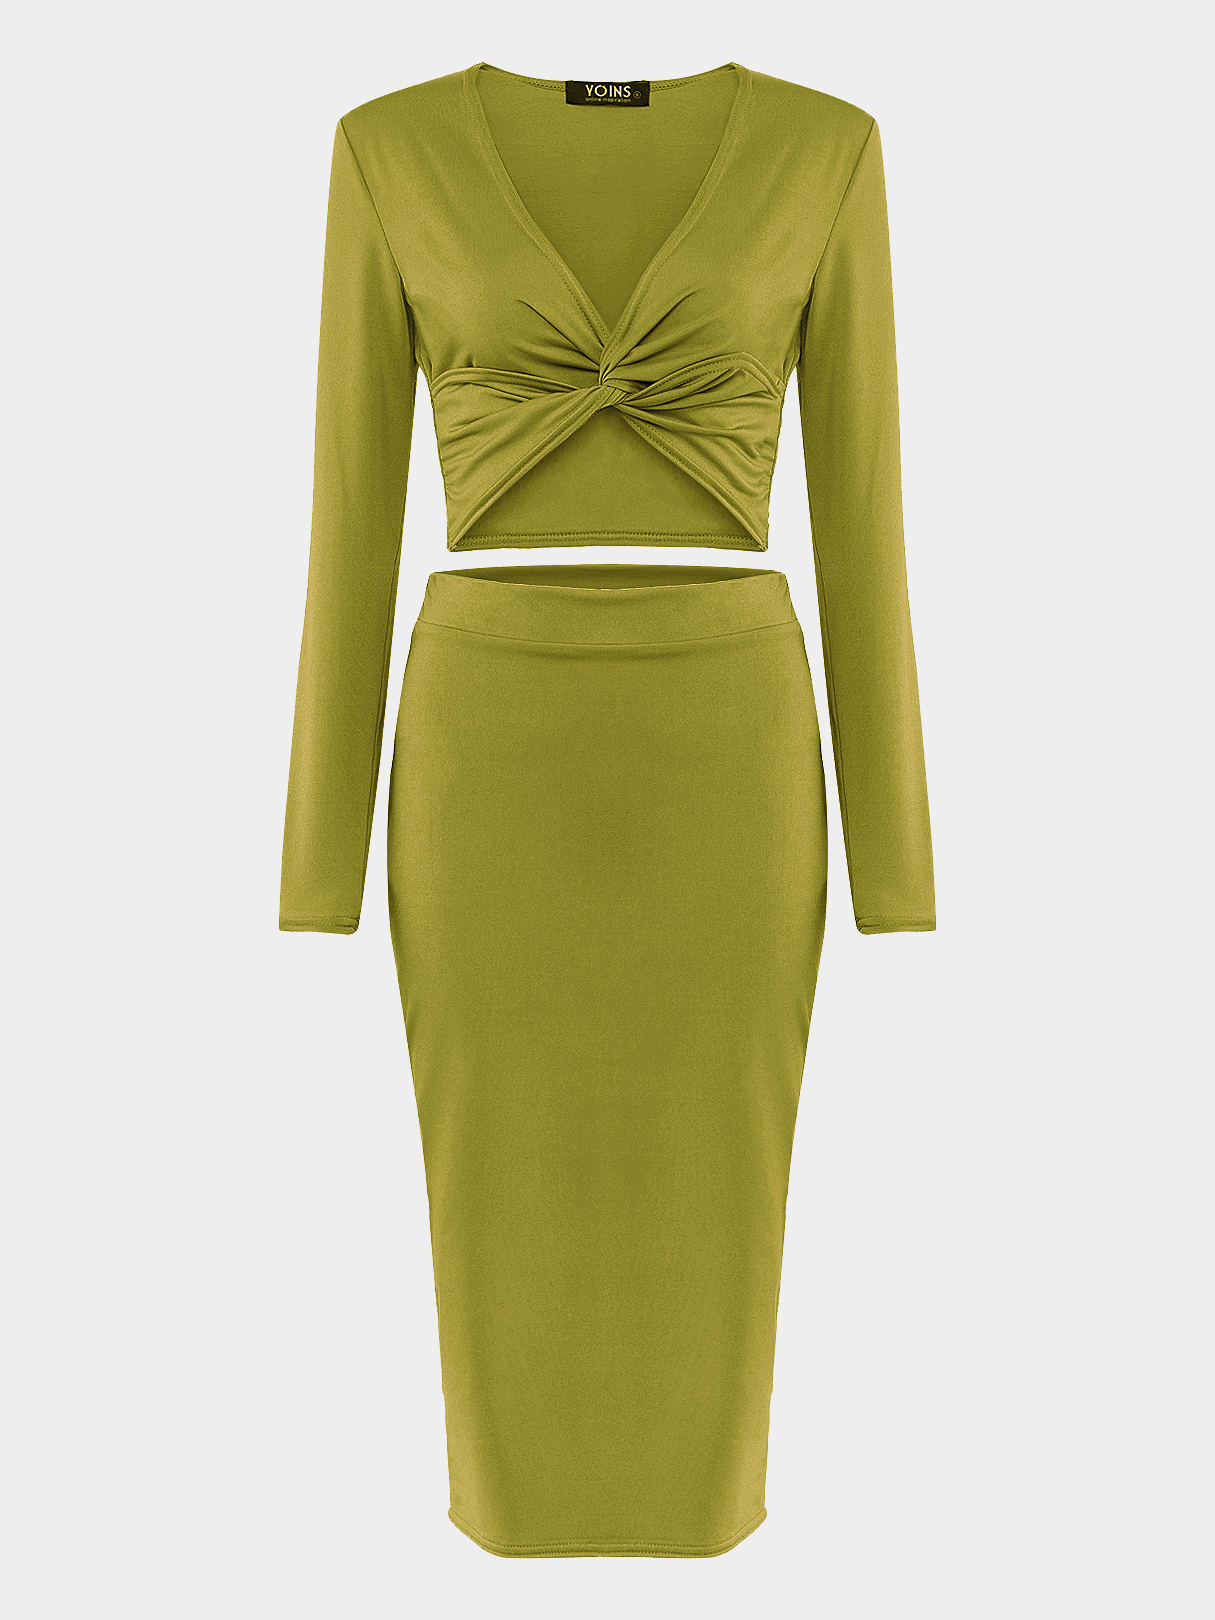 Green Cross Front Crop top & Midi Skirt Co-ord